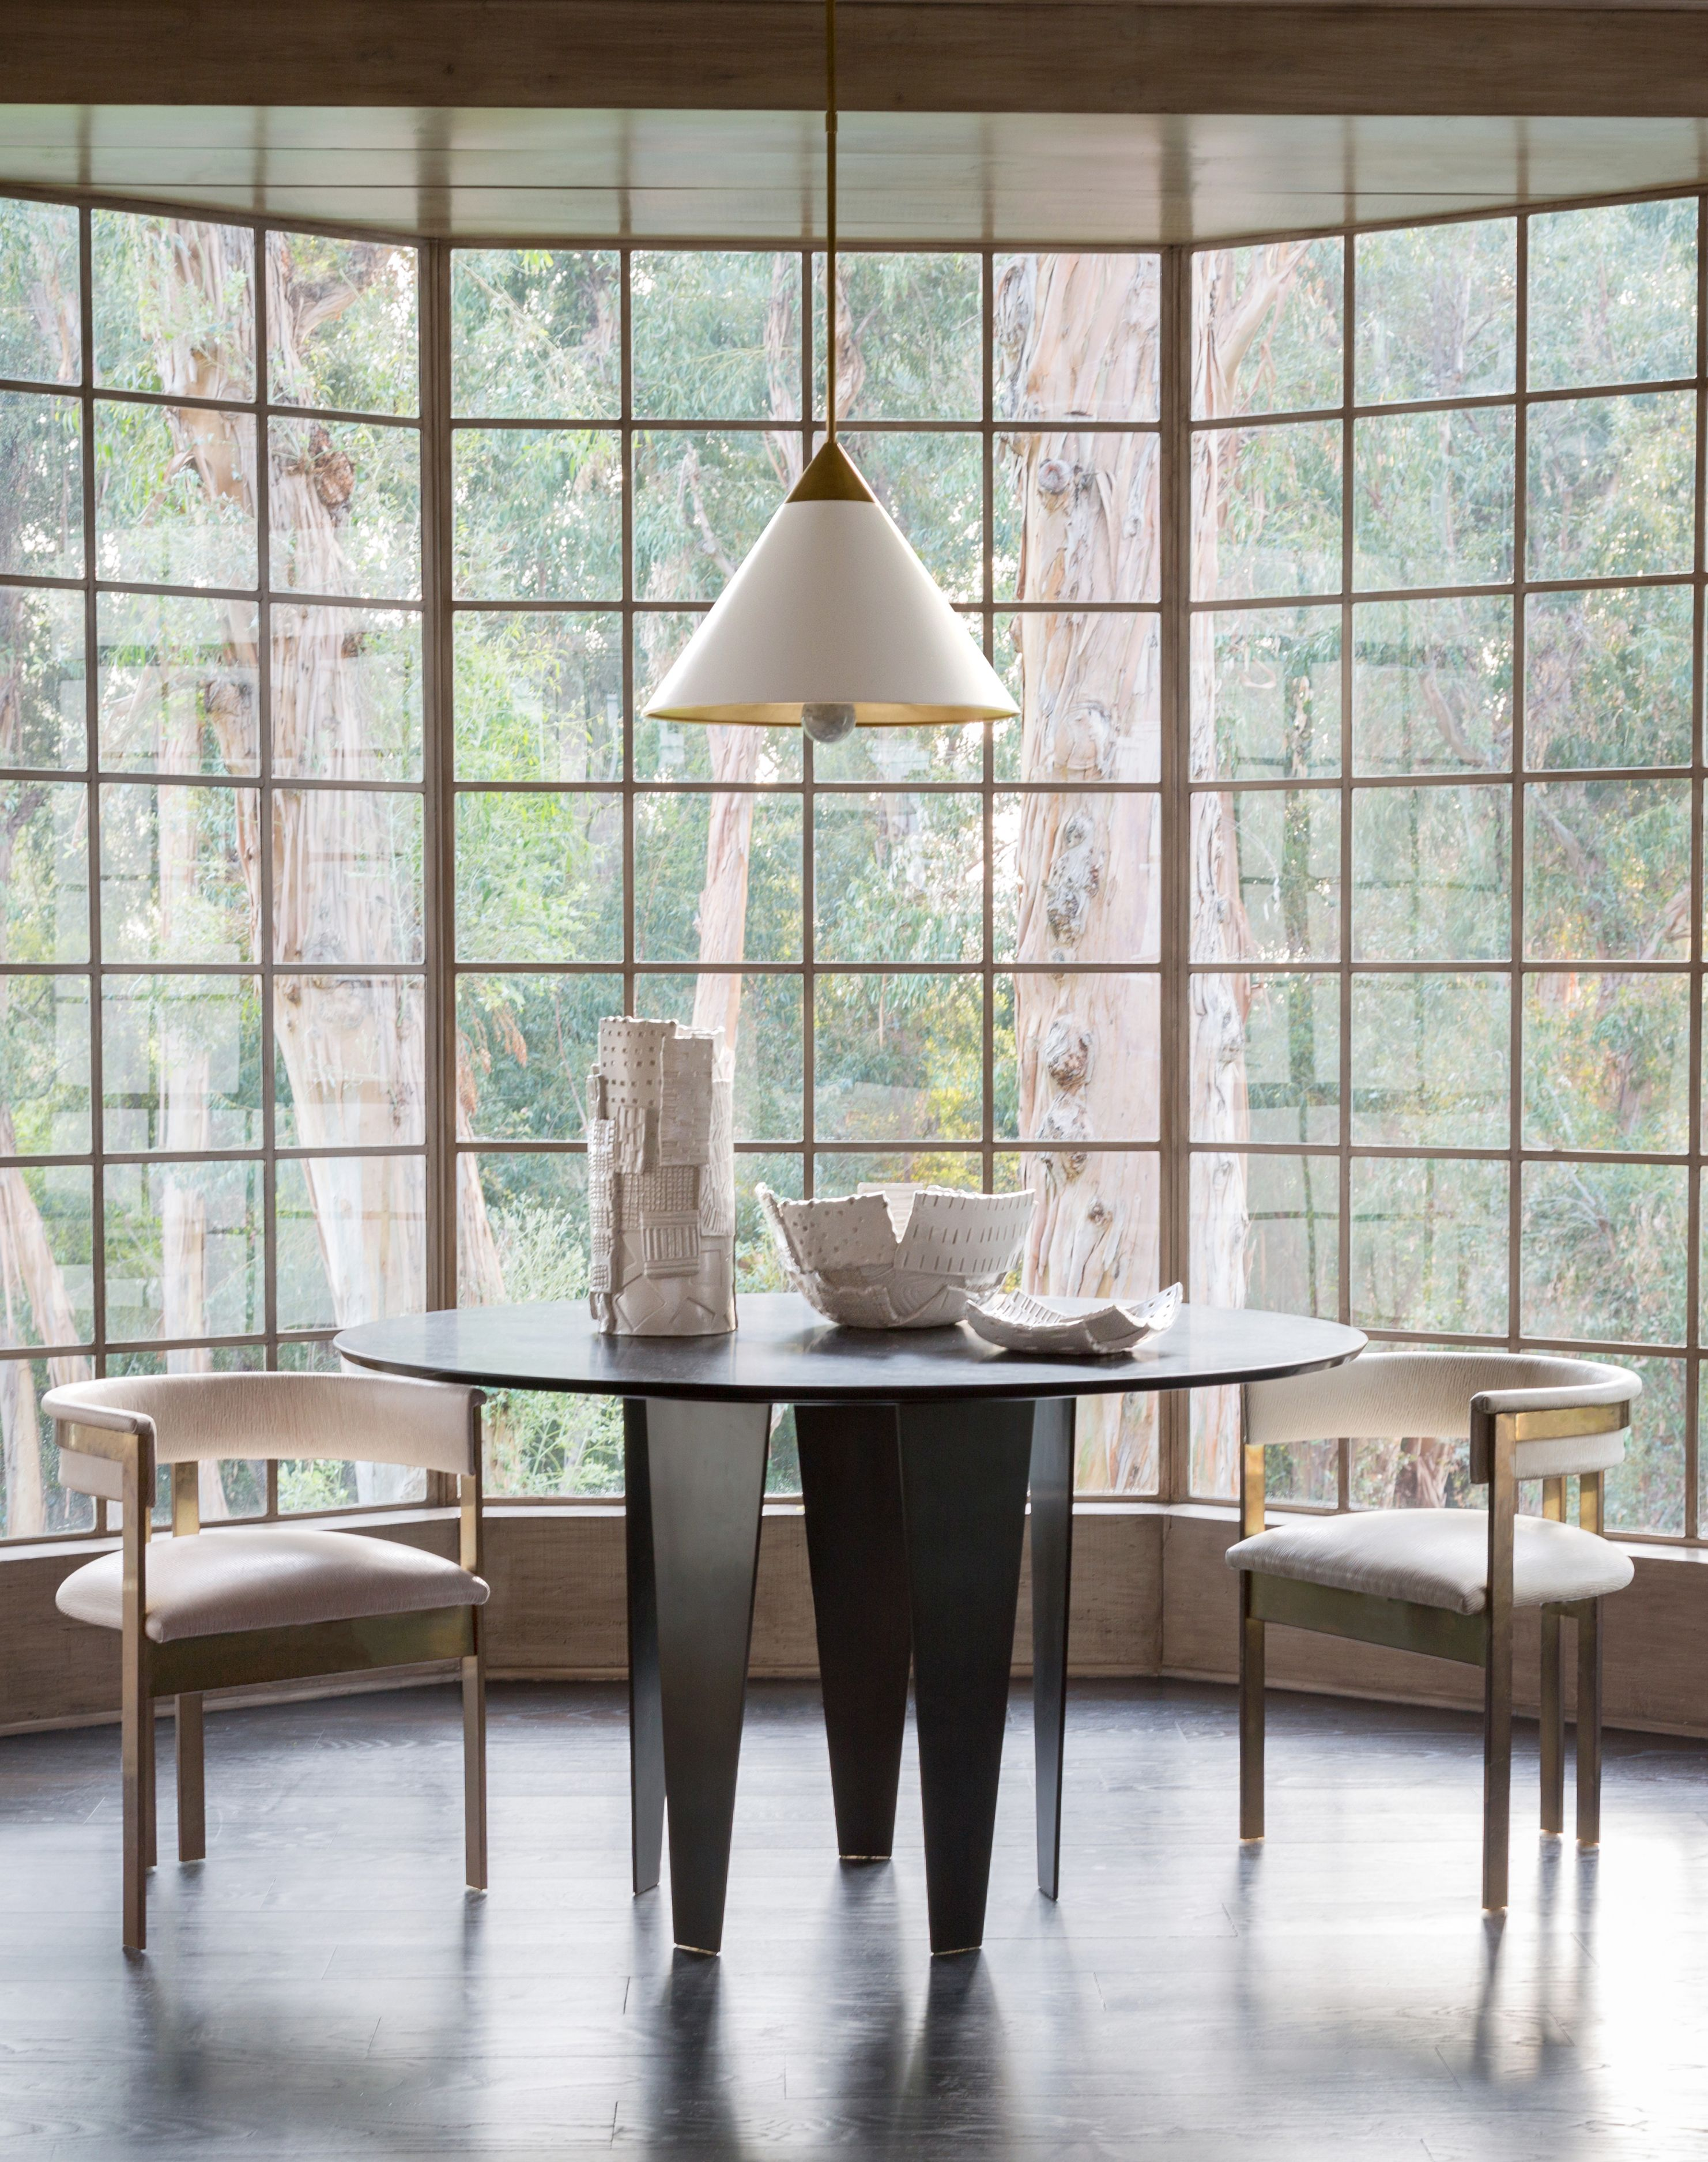 Kelly Wearstler Furniture Collection Home Living Design  # Meuble Collection Brady